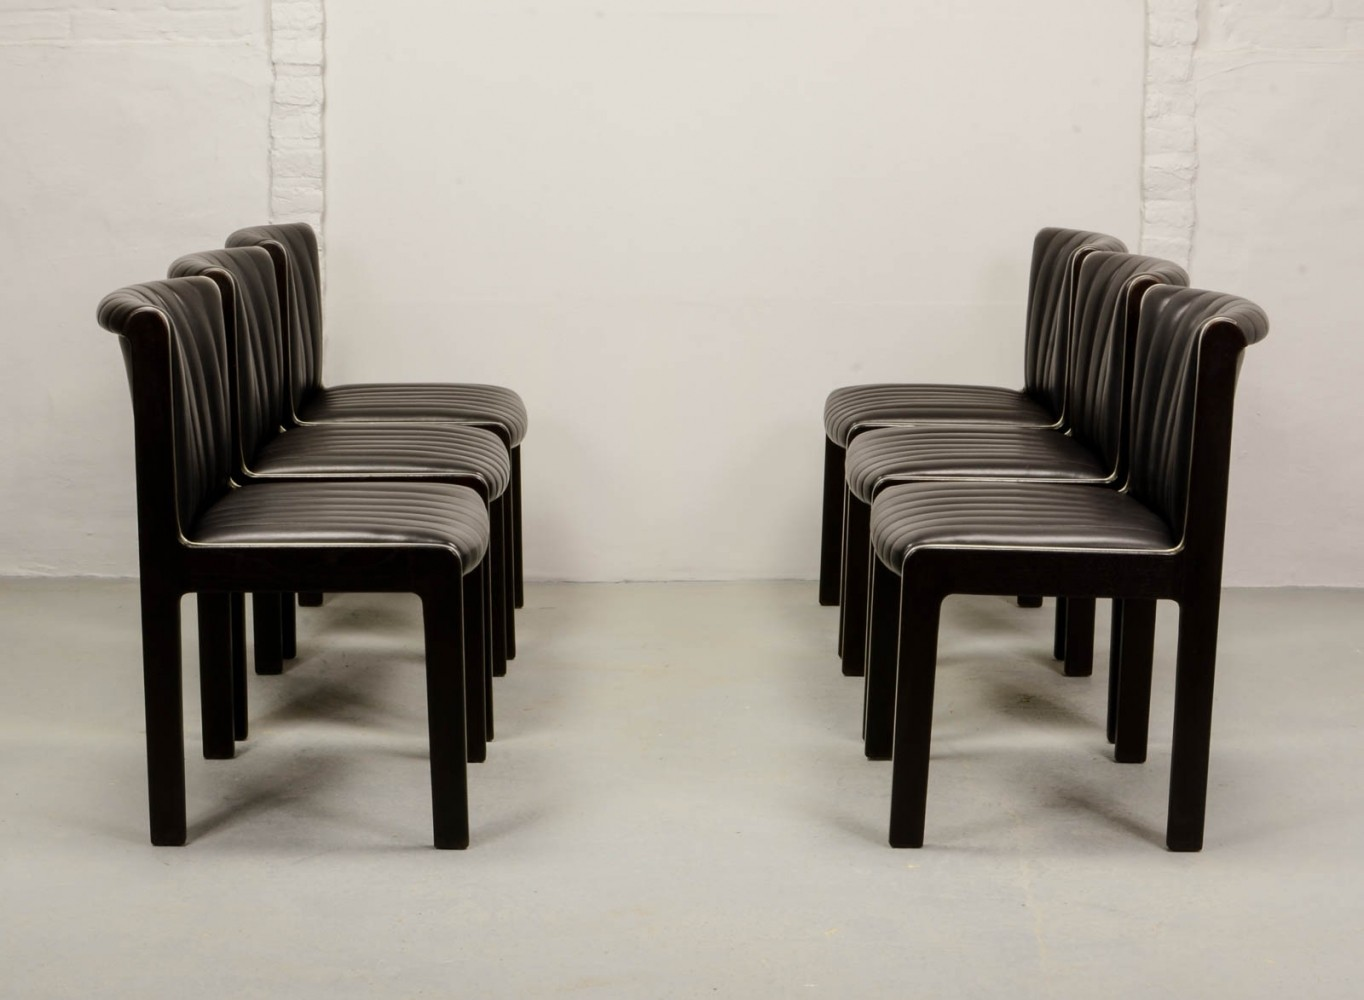 Set of Six High Quality Leather Dining Chairs by Benze Sitzmobel, 1970s